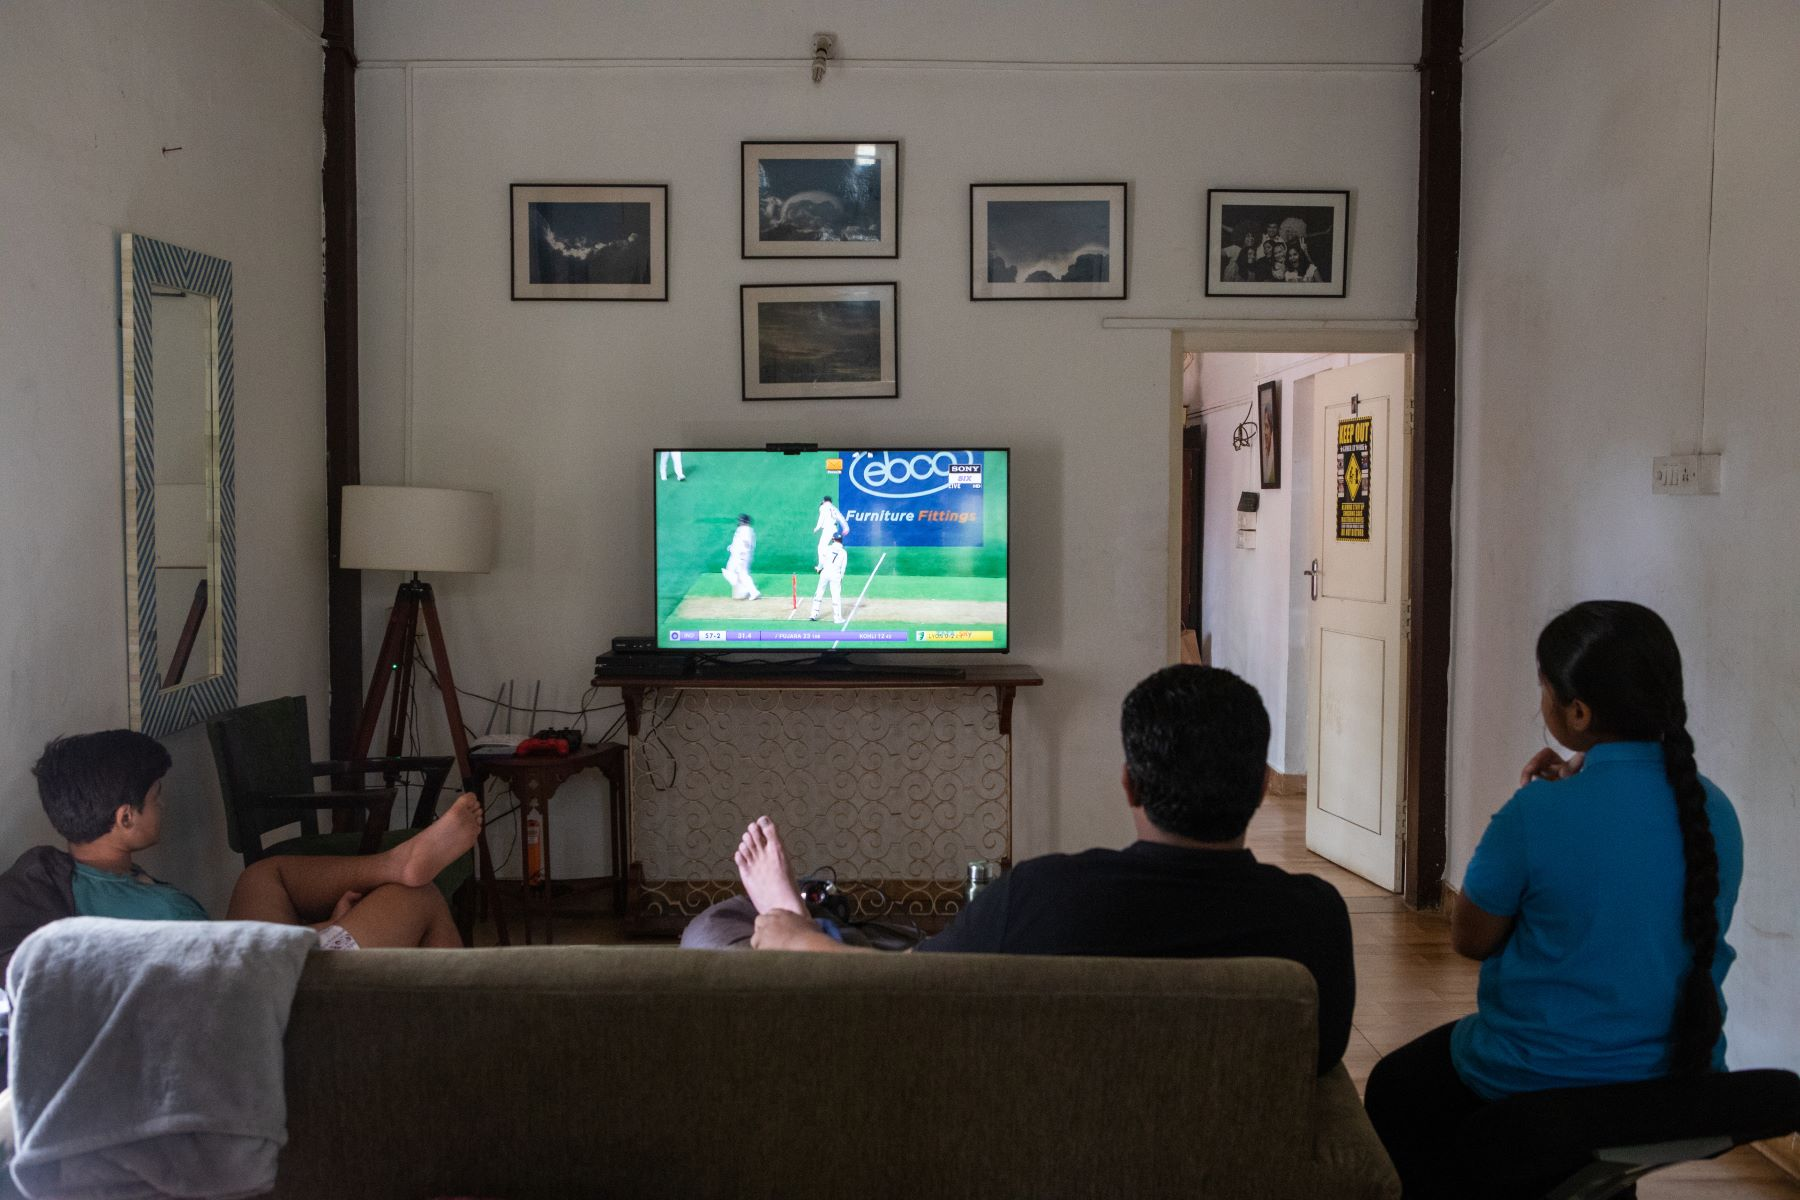 Simhasthita Singh watches the India vs Australia match with her family. She loves playing cricket and even trains at a cricket camp